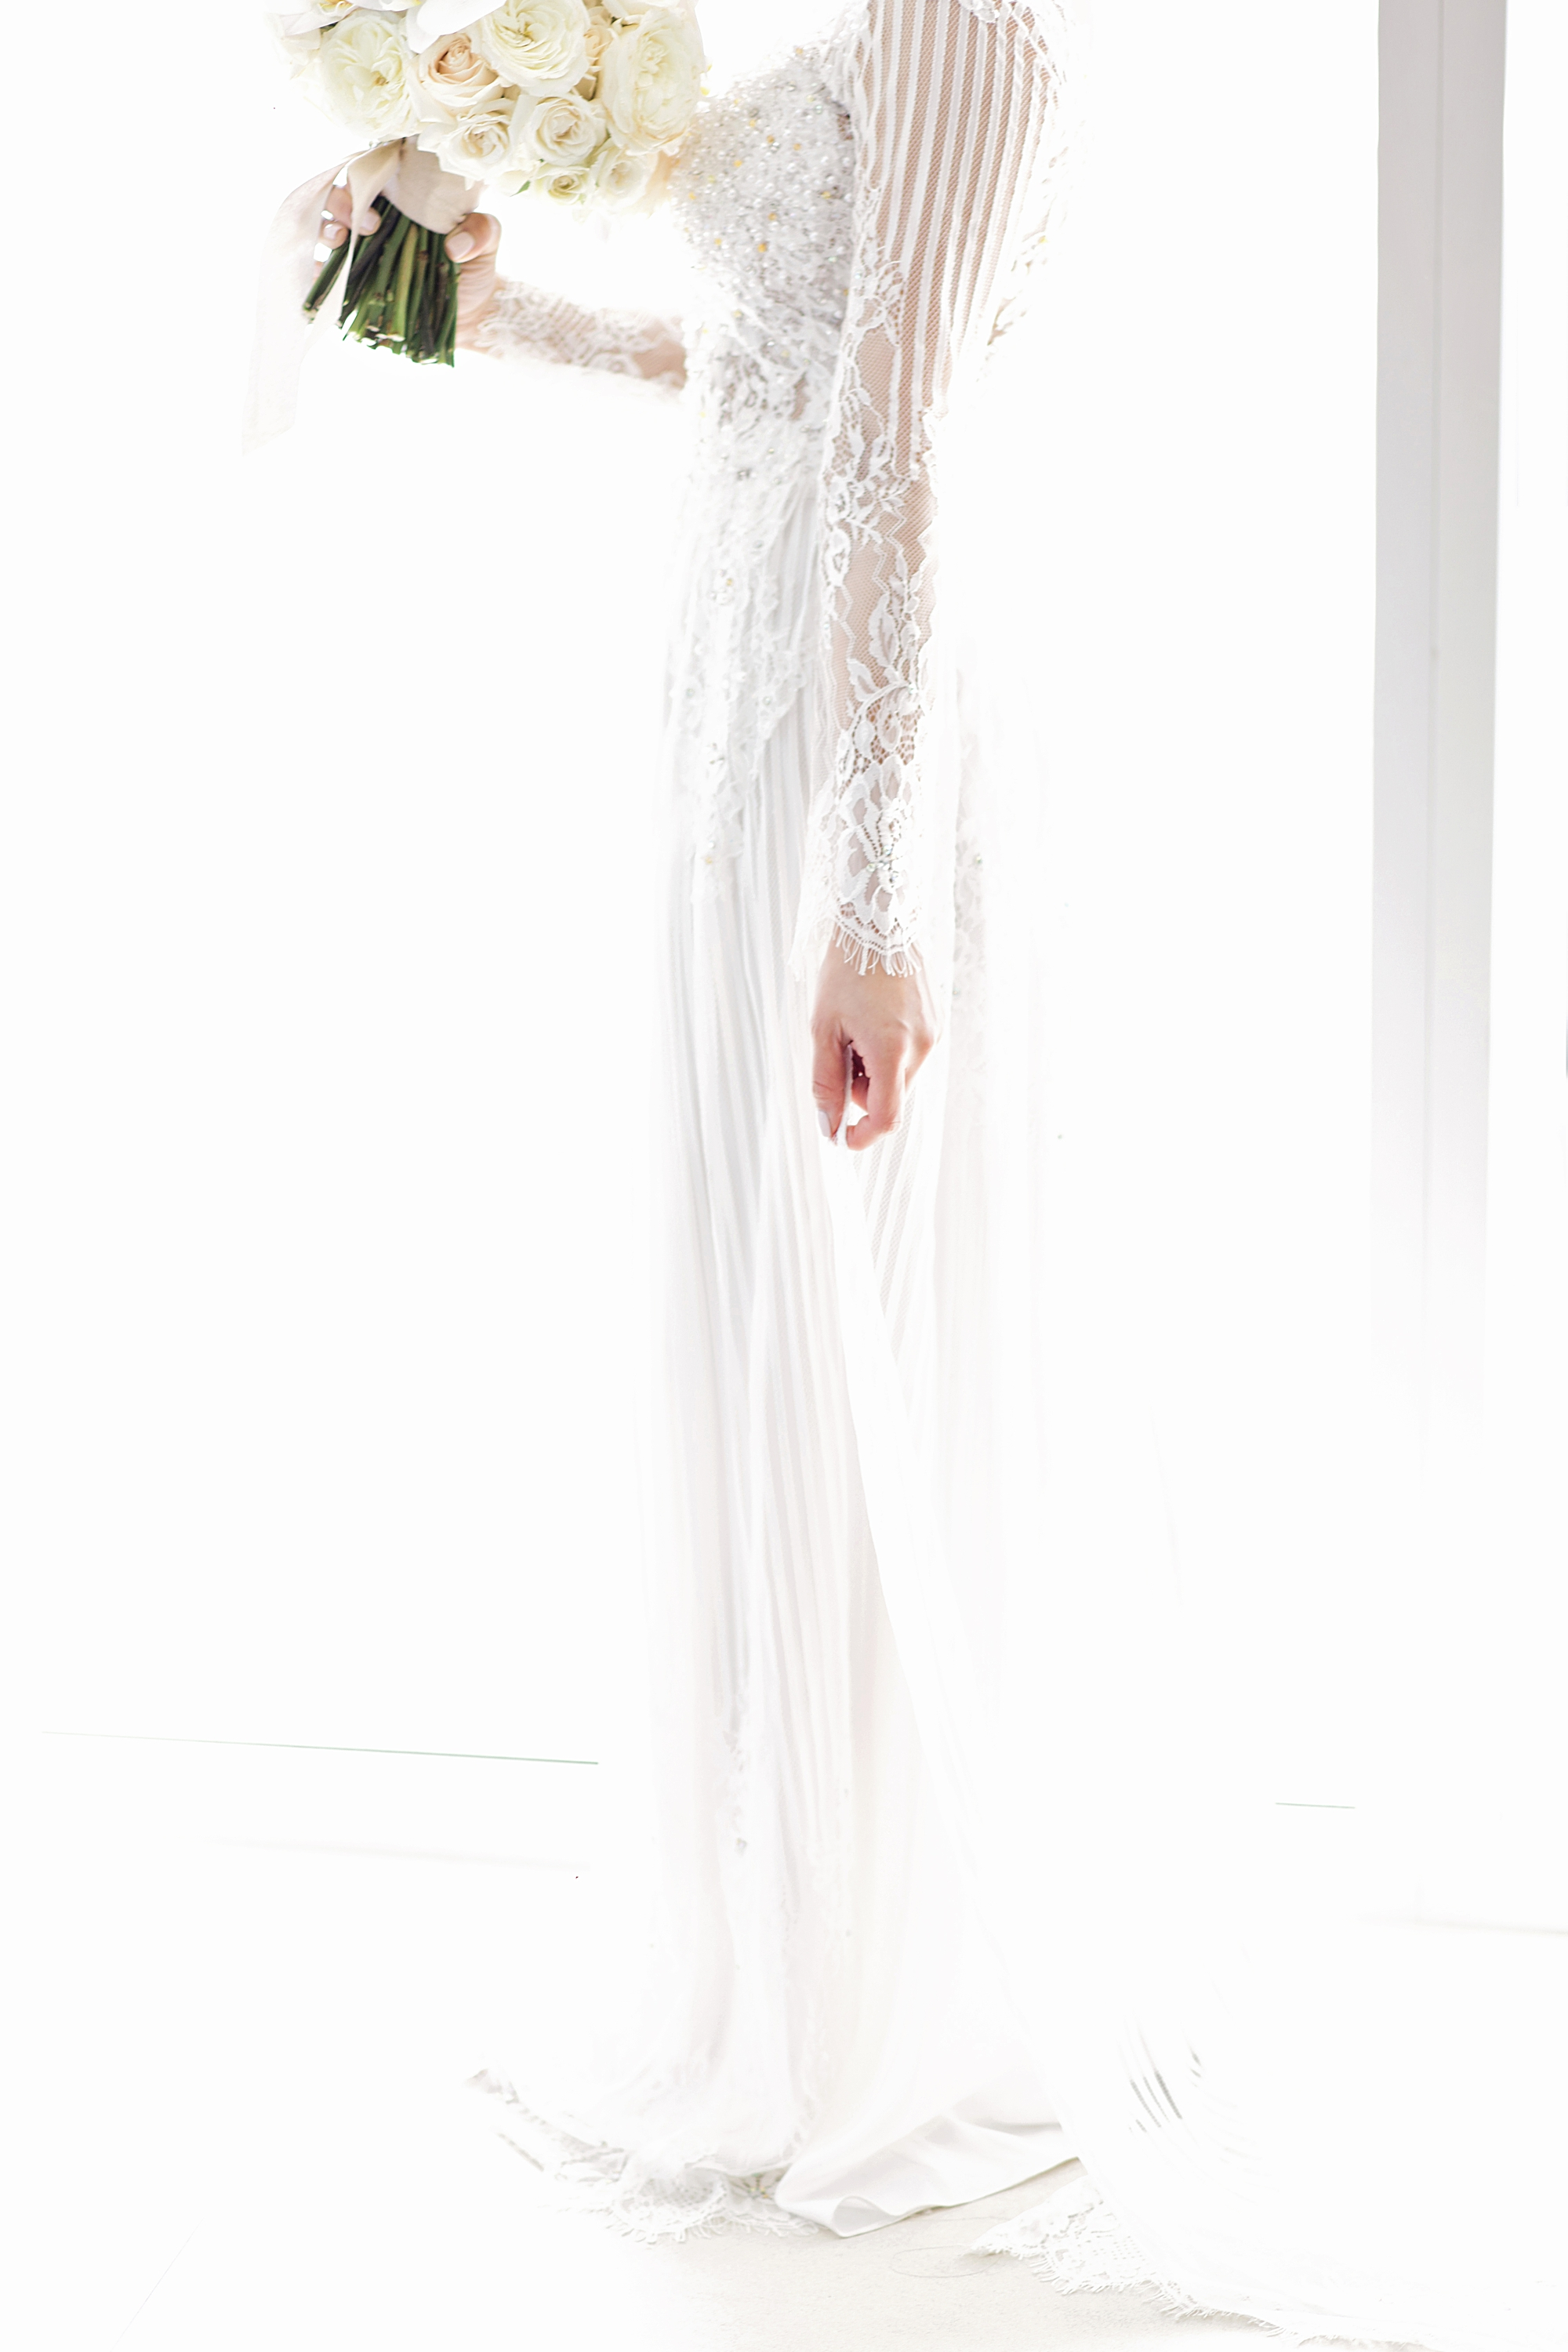 ao dai white wedding gown